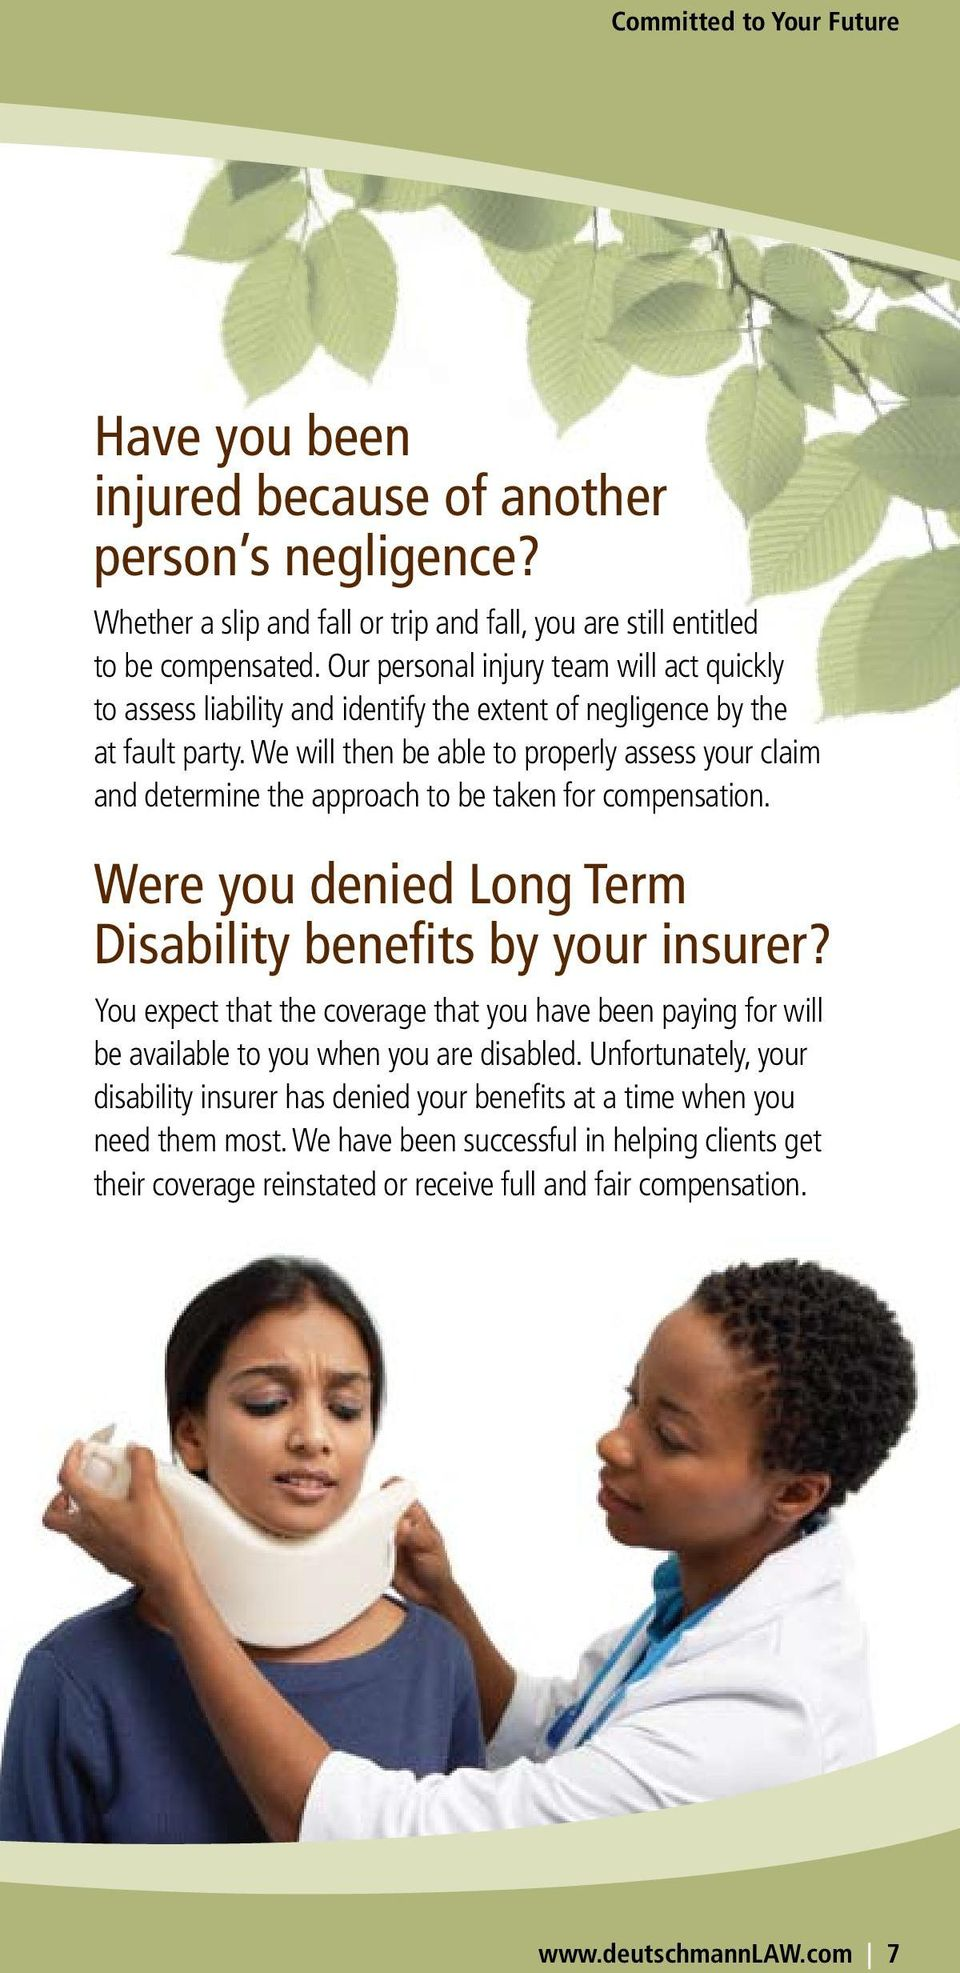 We will then be able to properly assess your claim and determine the approach to be taken for compensation. Were you denied Long Term Disability benefits by your insurer?